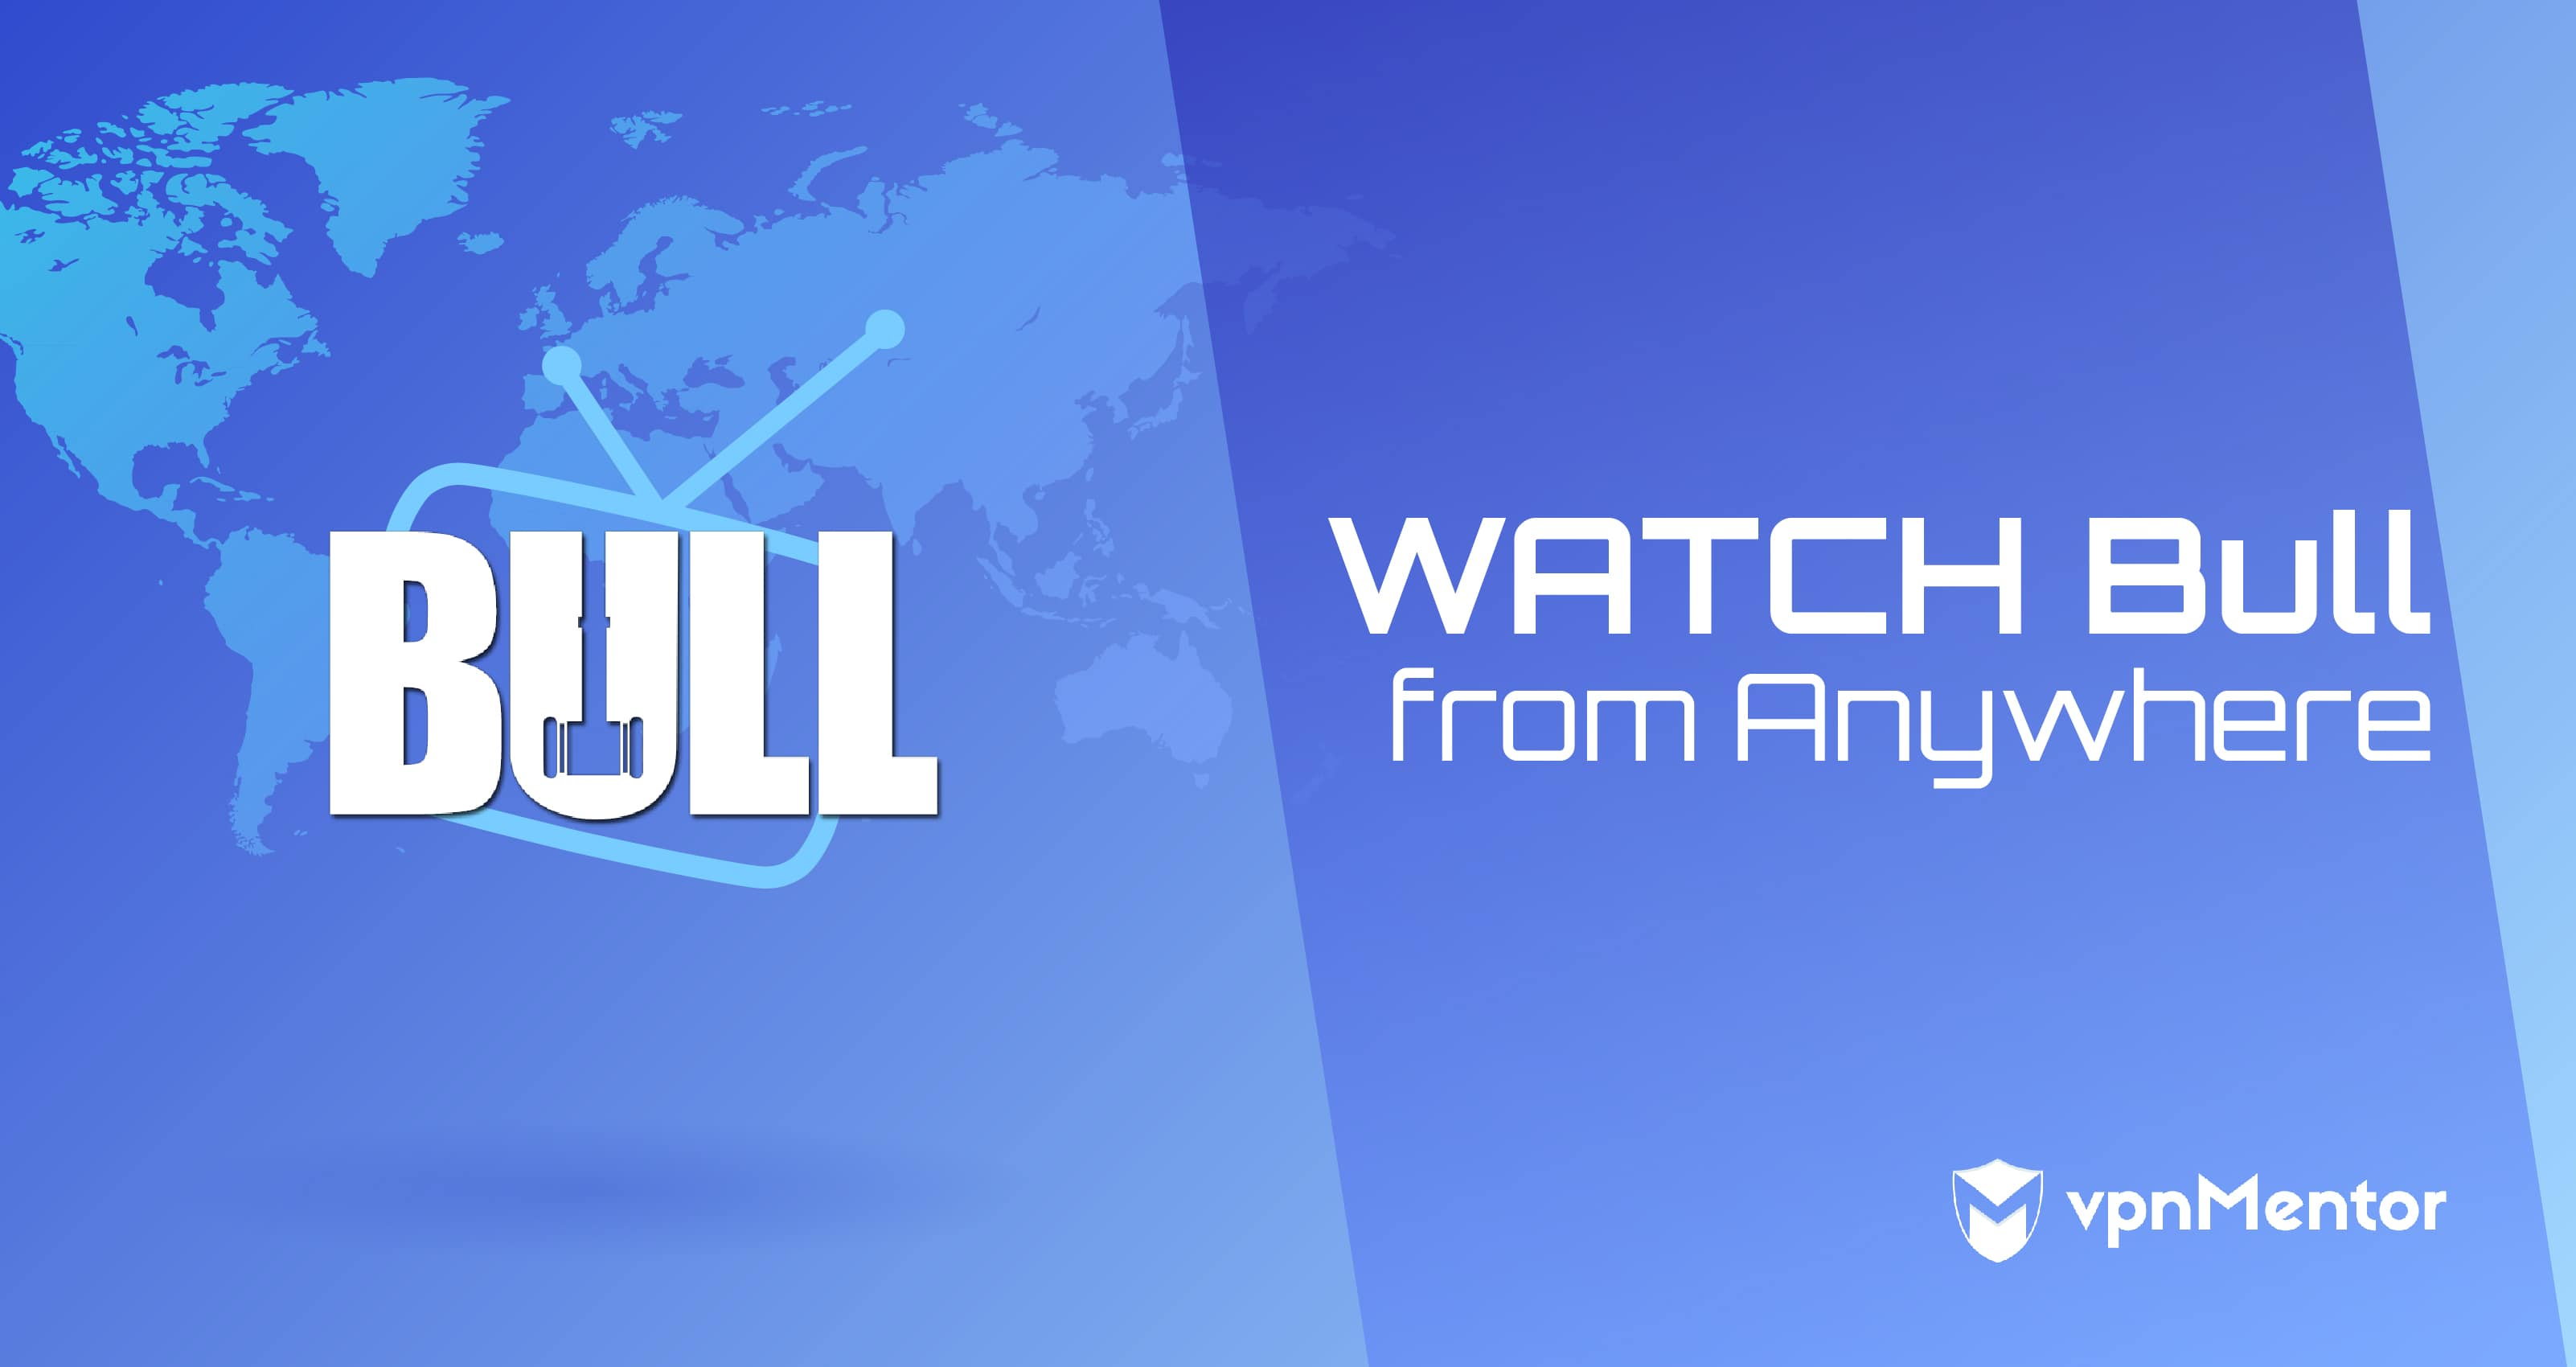 Watch Bull from Anywhere